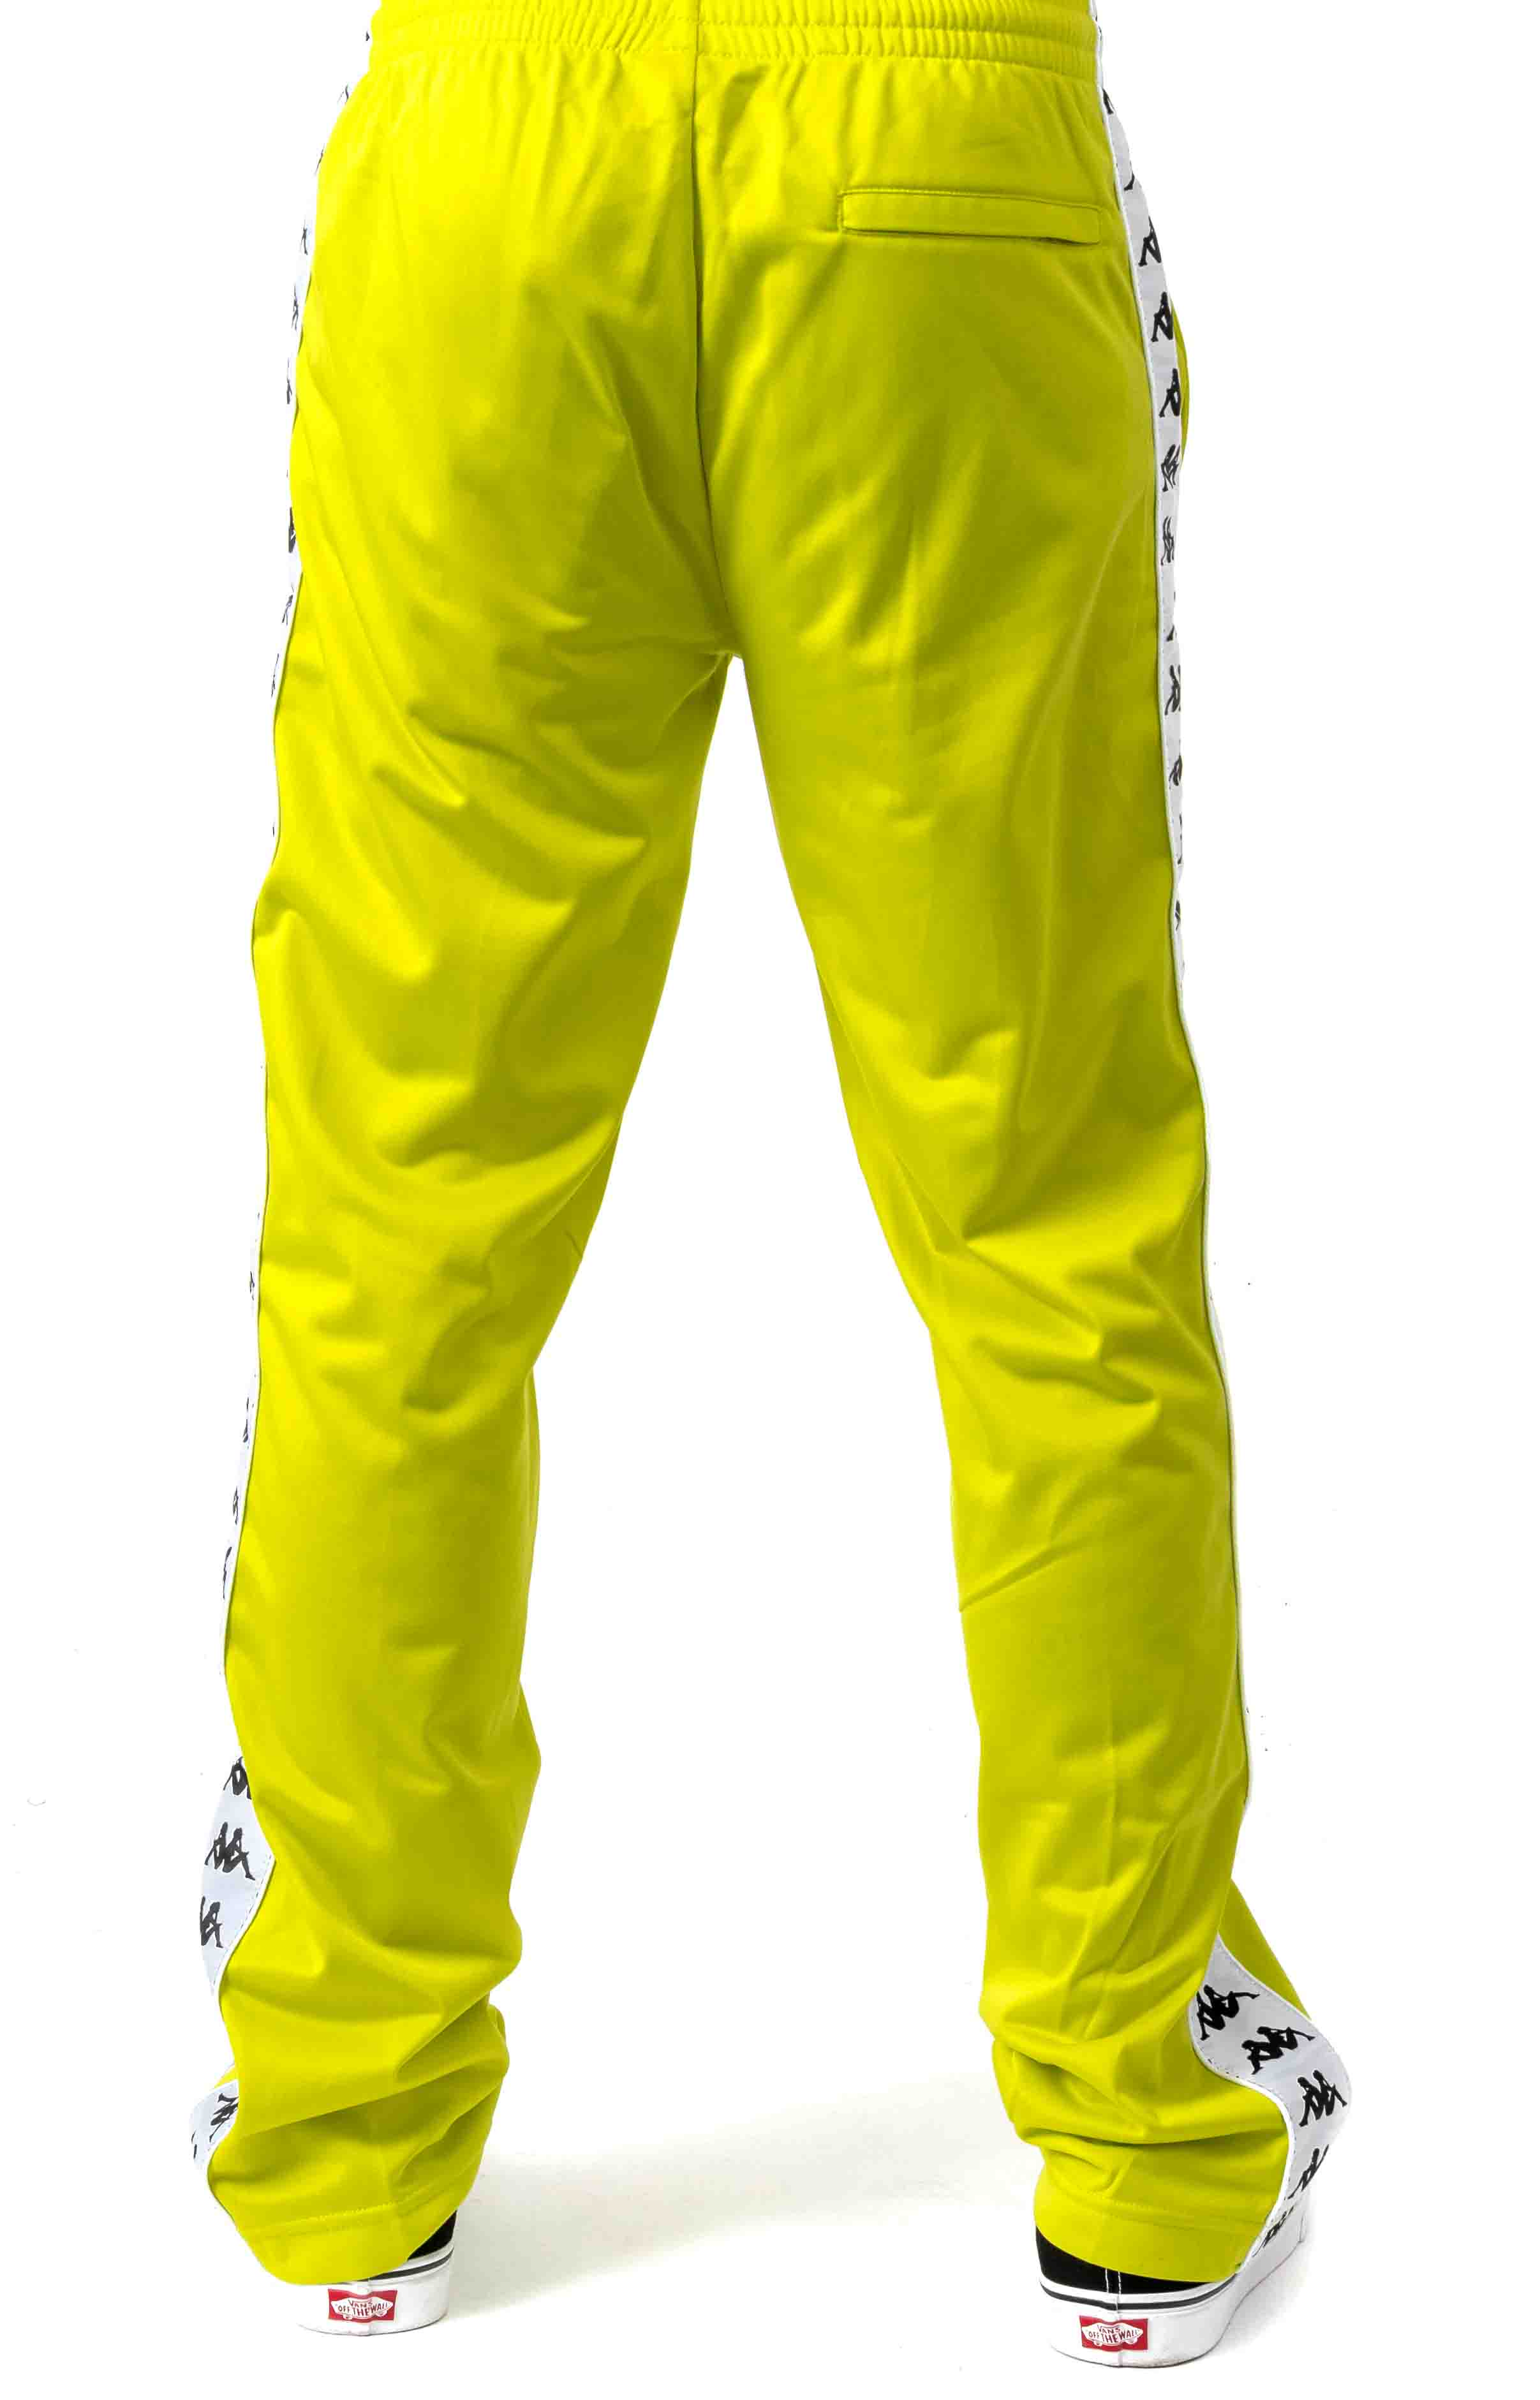 222 Banda Astoriazz Trackpant - Lime Green  3